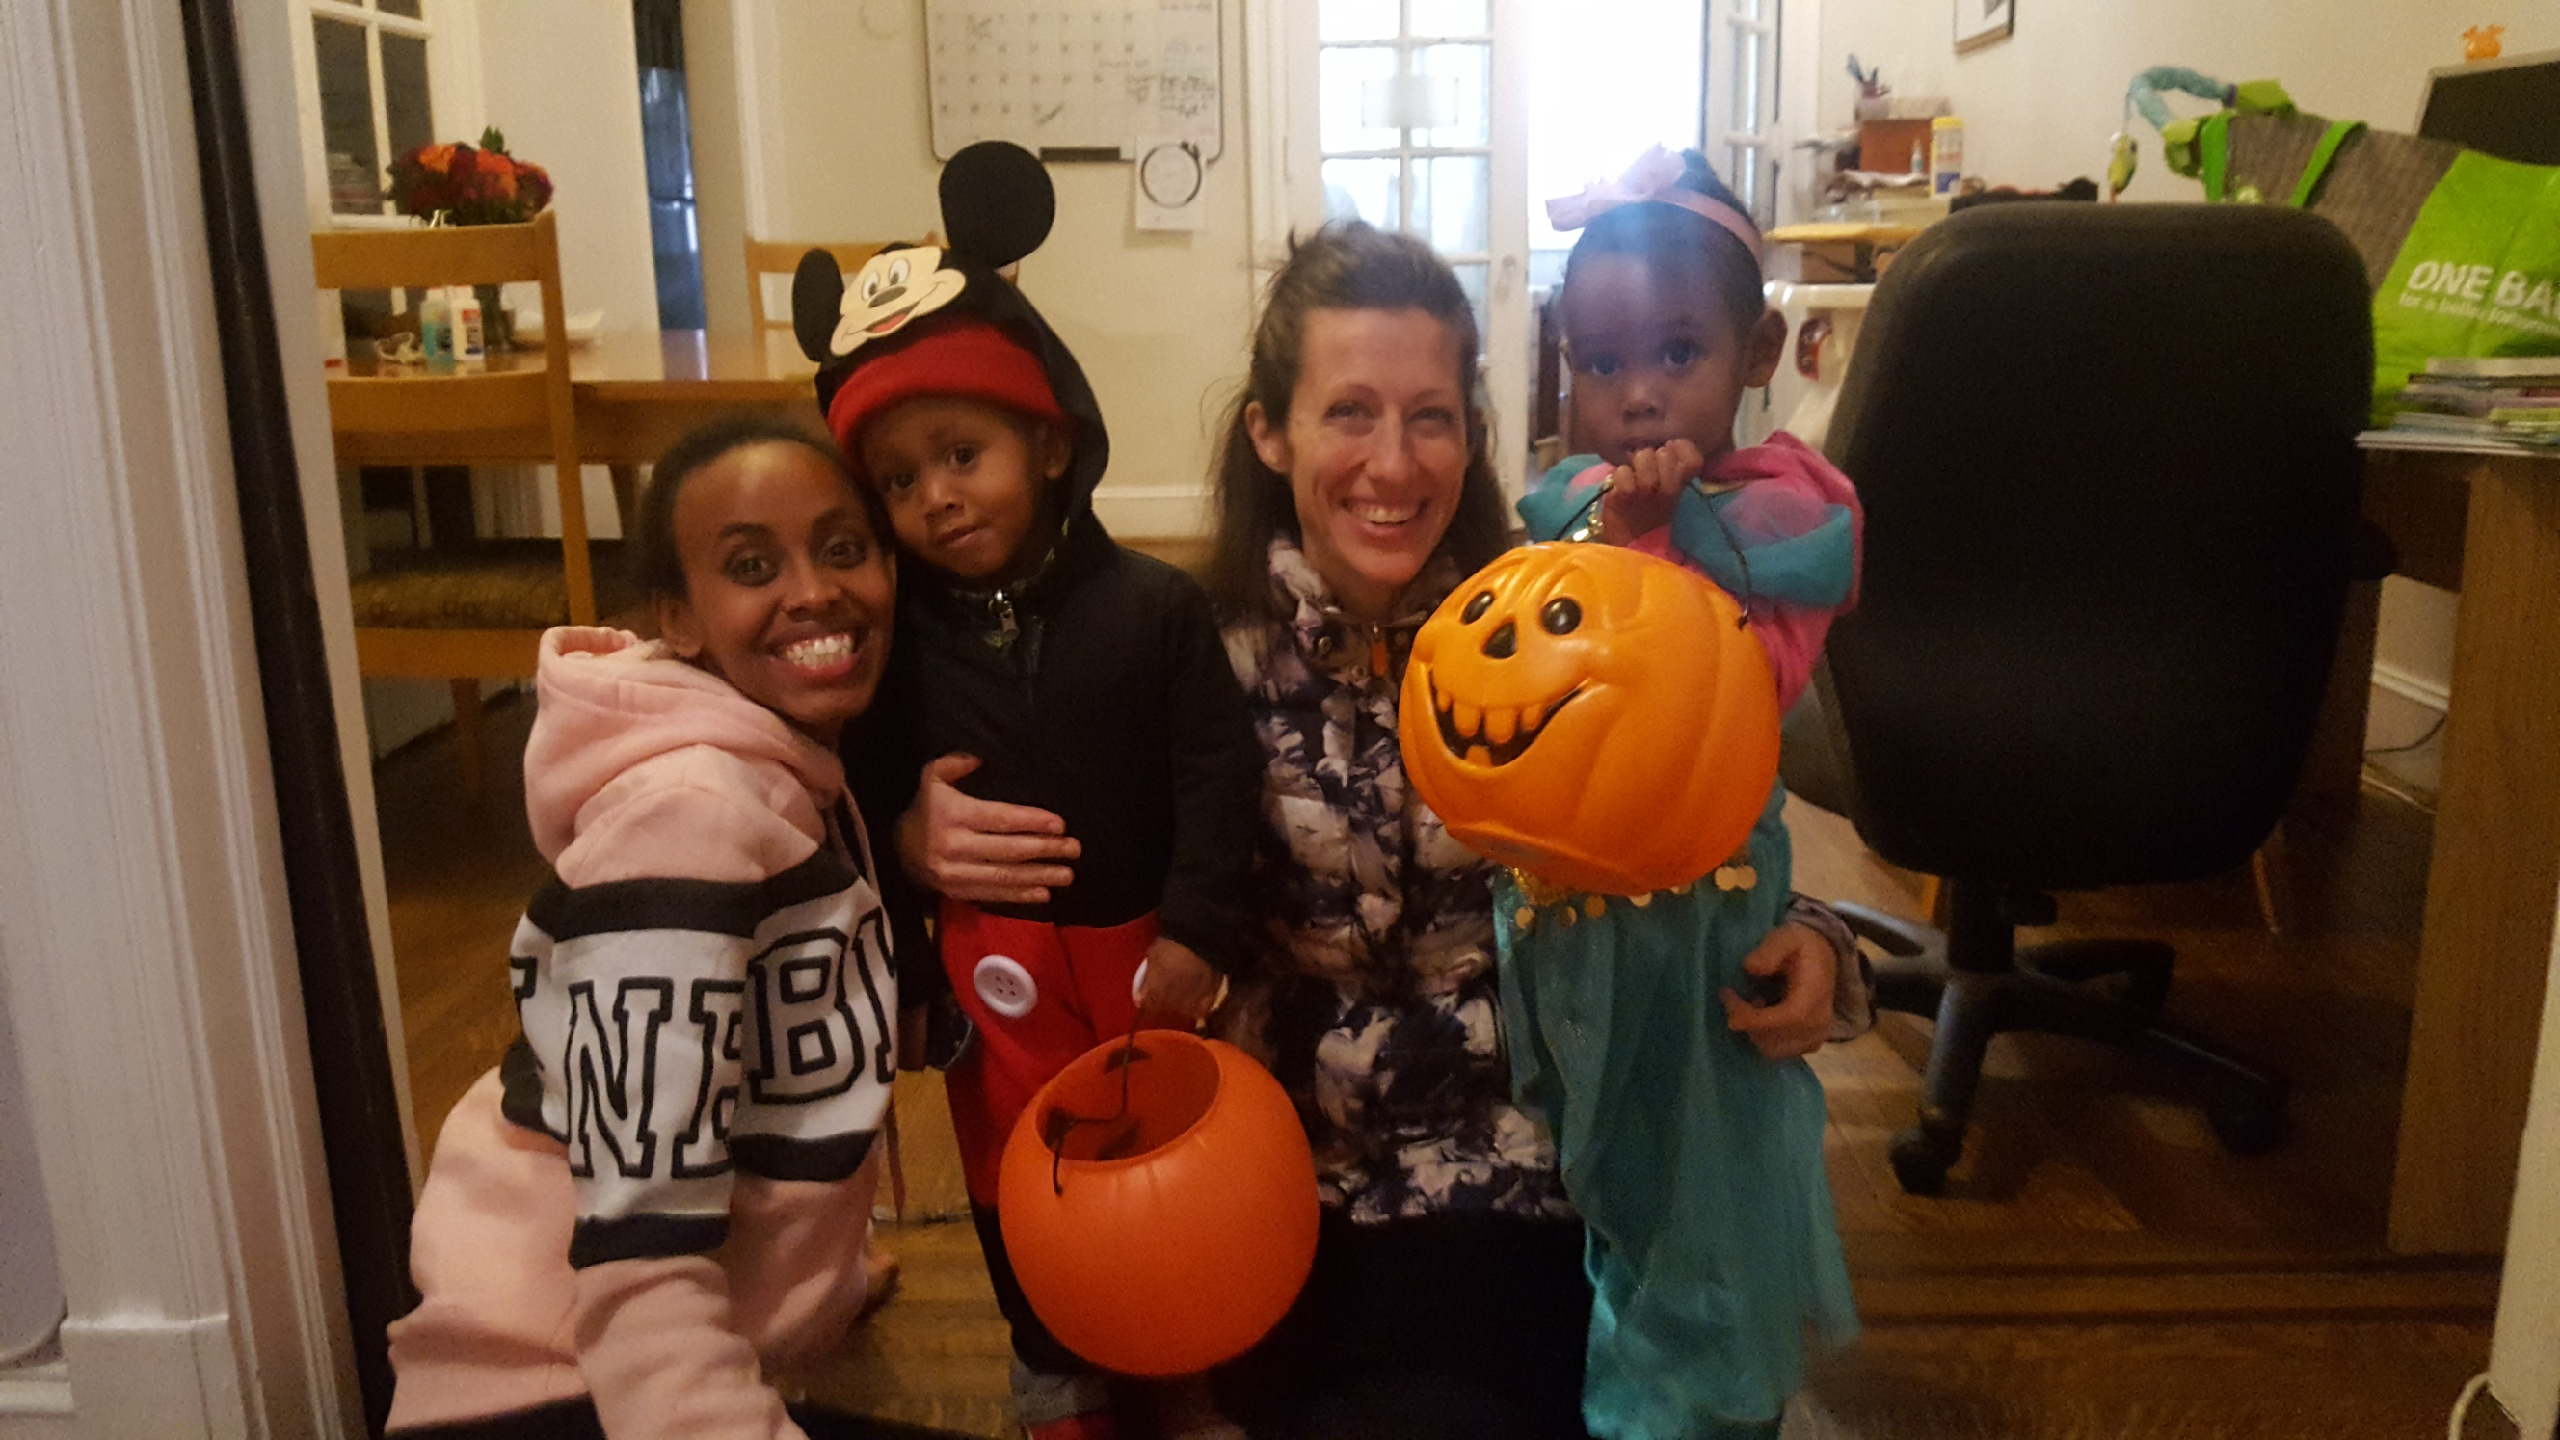 A former resident and her children visited the maternity home to go trick-or-treating with Susan.